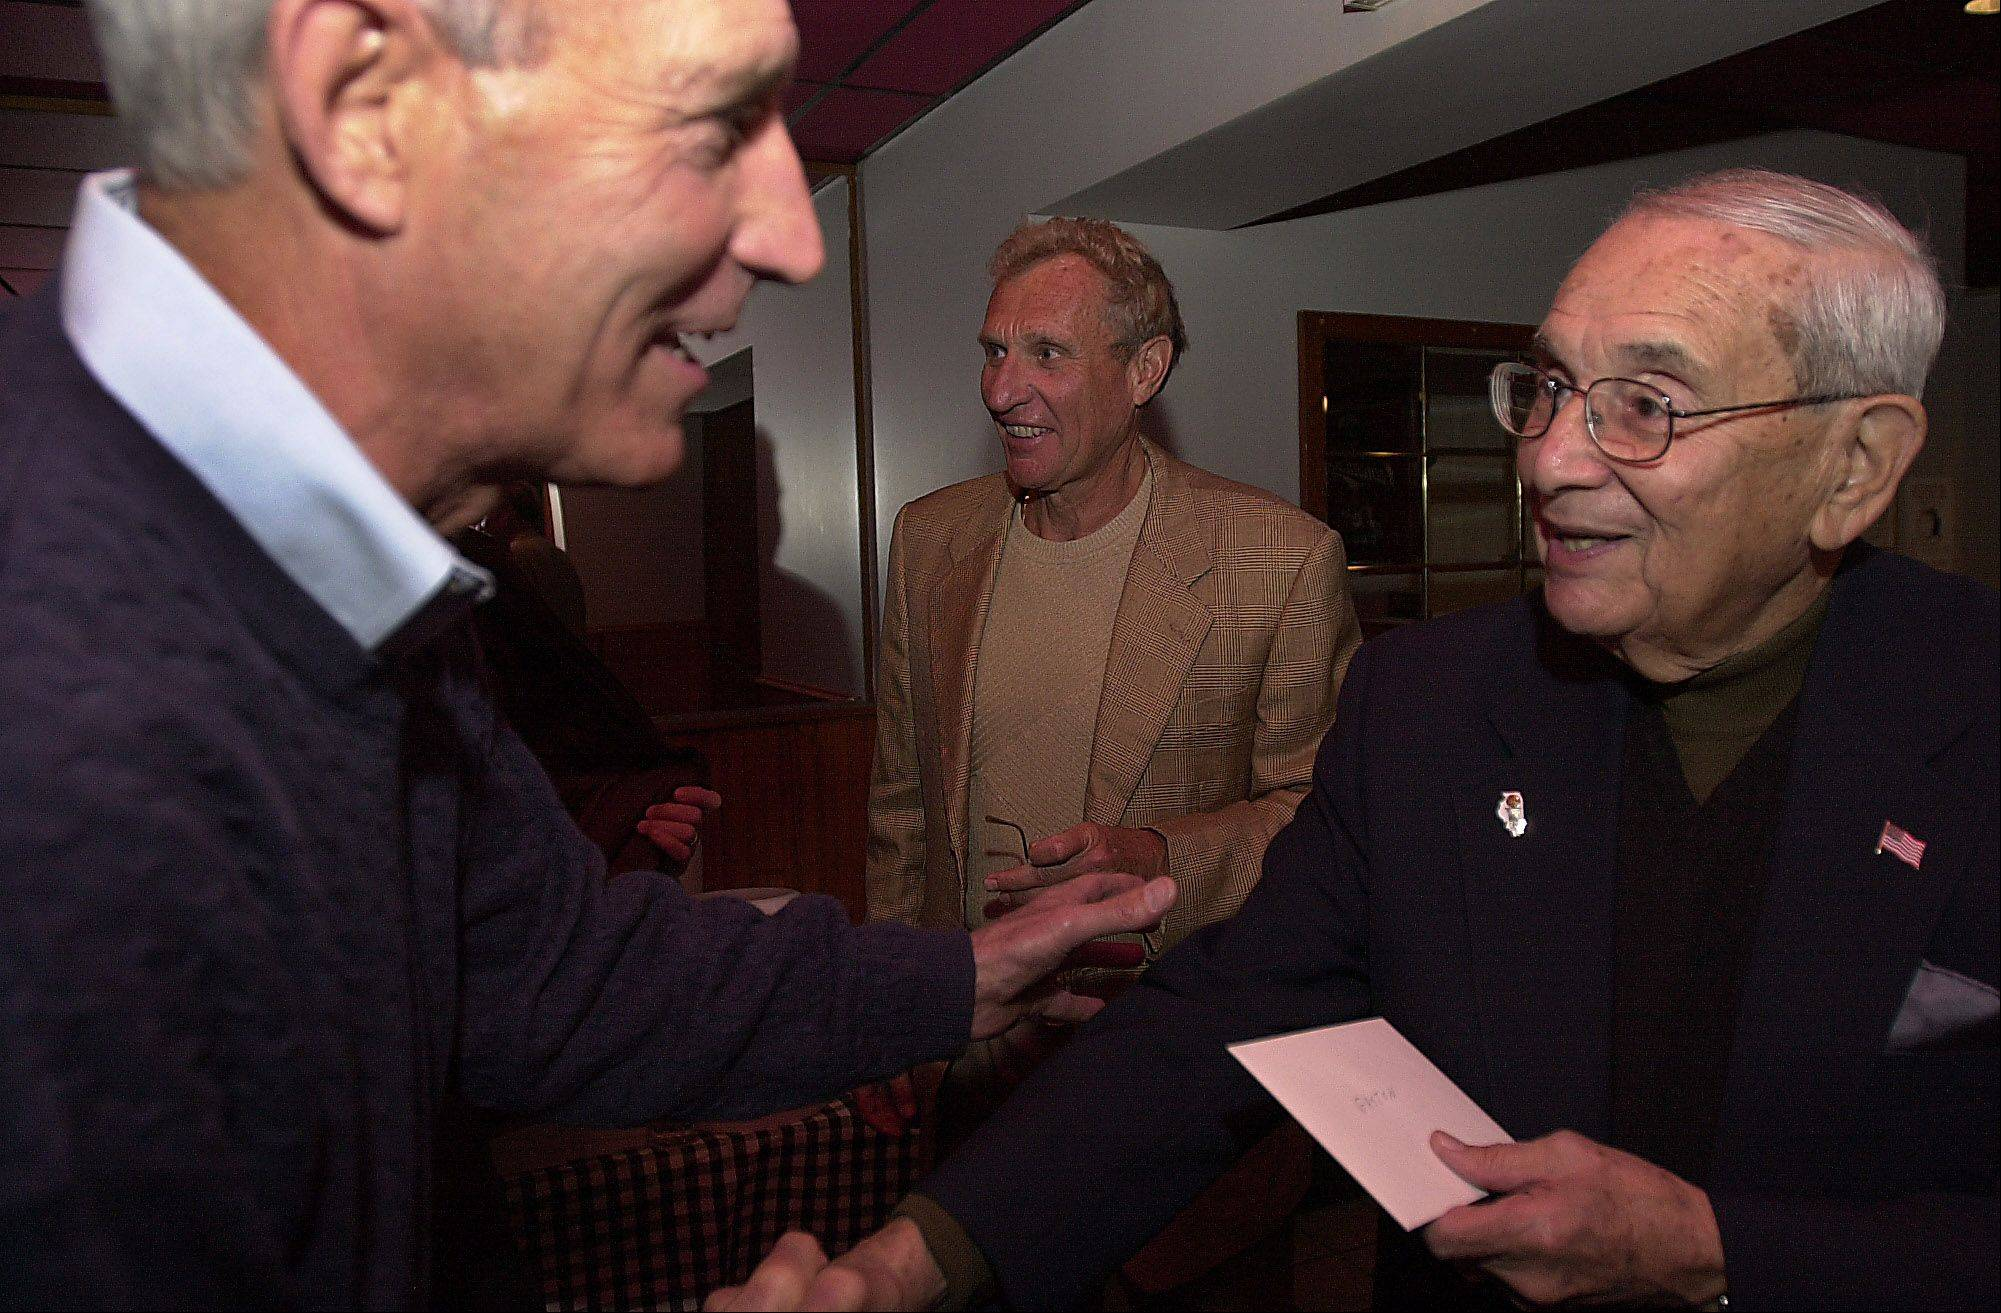 George Verber, left, says hello to his old coach, Gaston Freeman, at Freeman's 80th birthday party in 2002. Verber died last week after a four-year battle with leukemia.